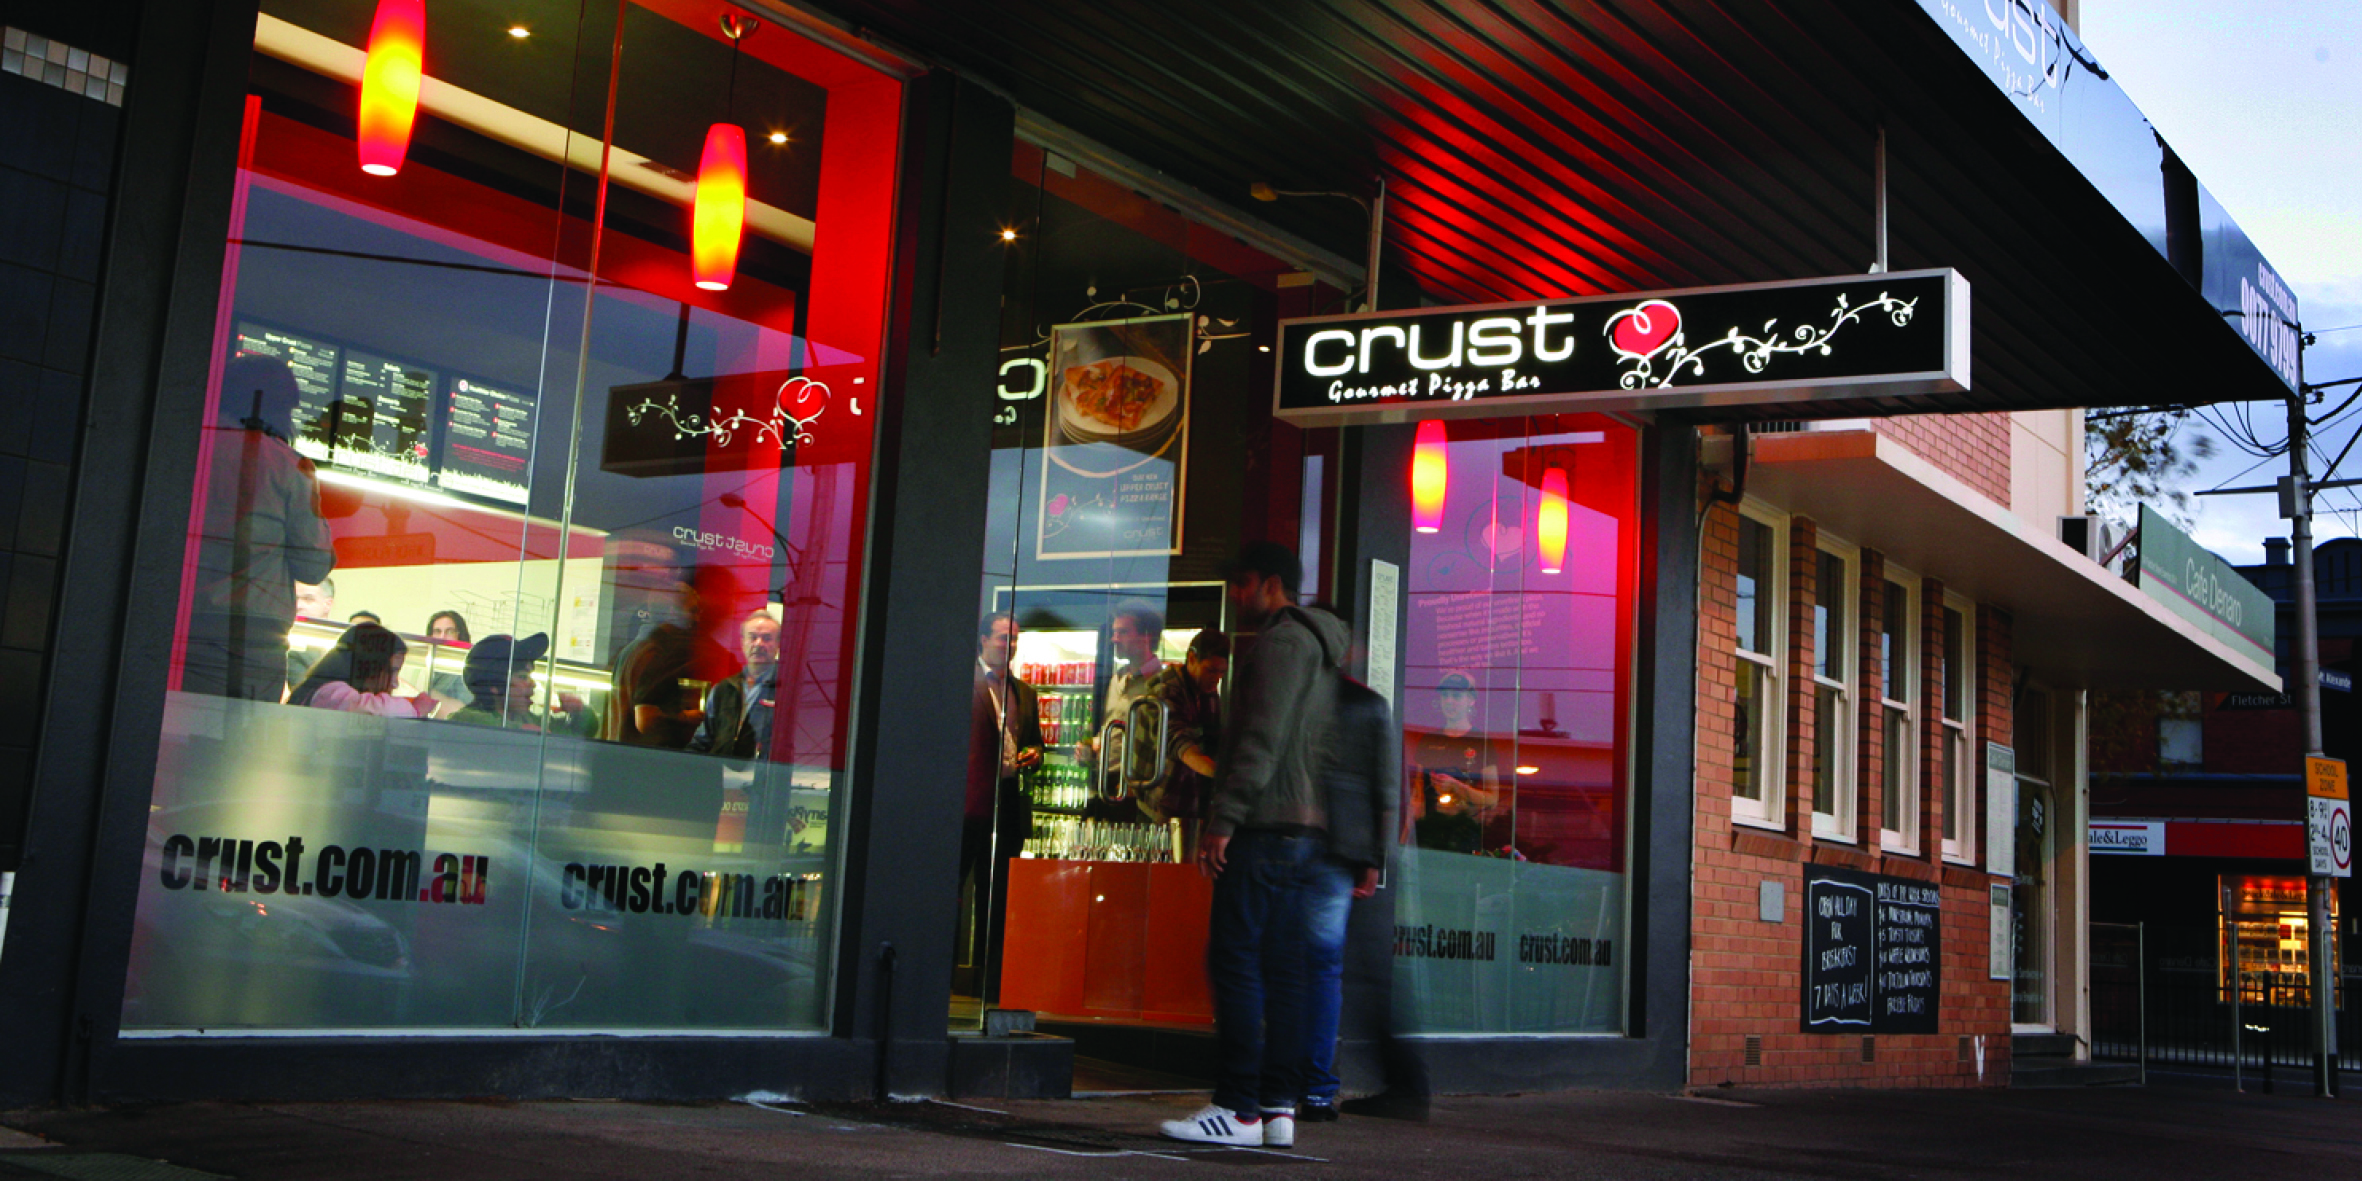 NEW Crust Gourmet Pizza Franchise for sale in Coffs Harbour, NSW. Enquire Now!